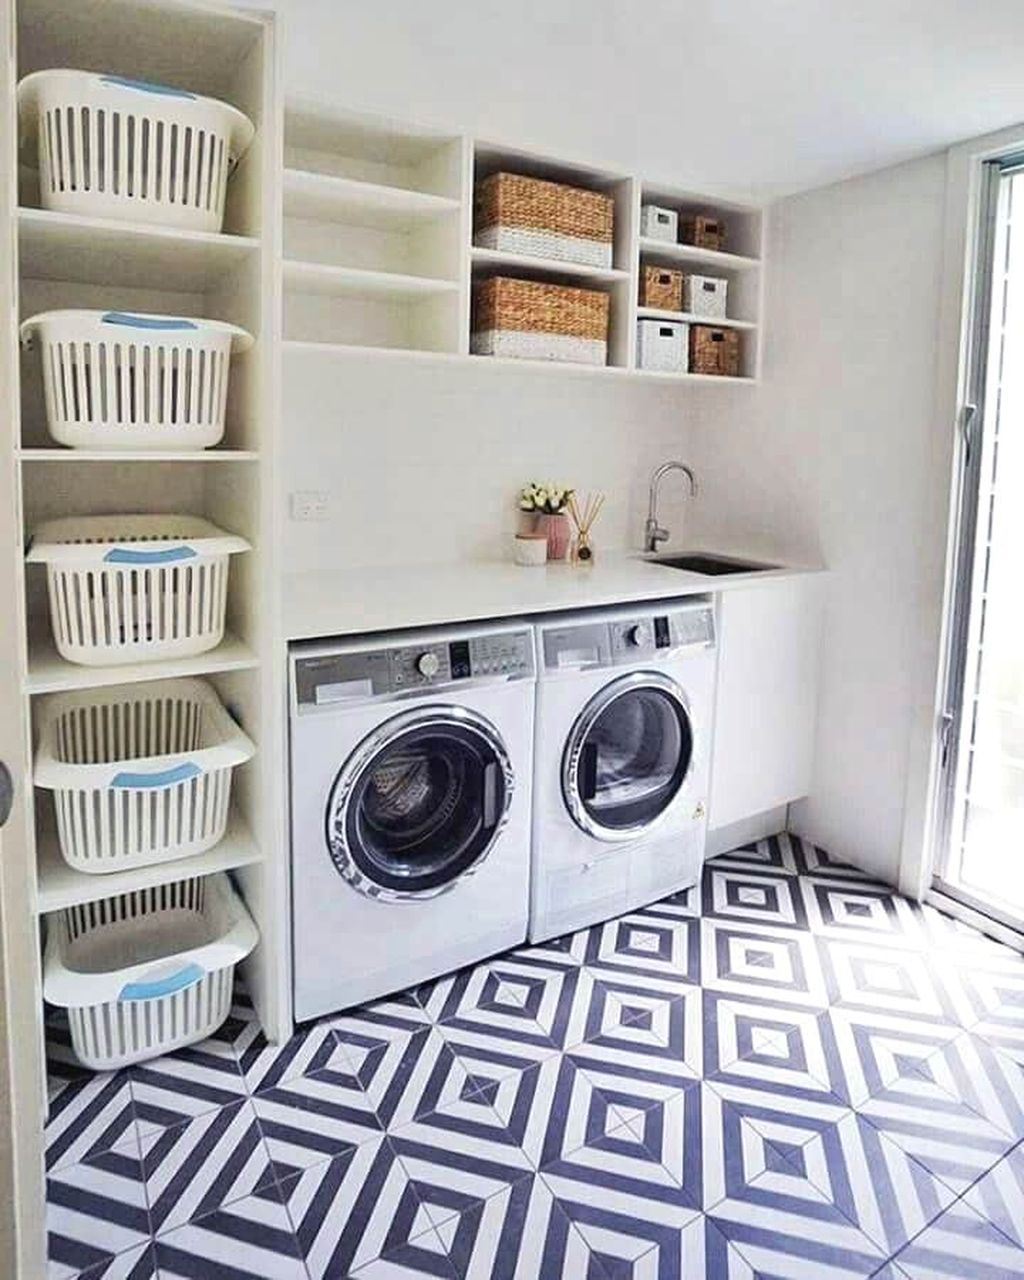 Favored Laundry Room Organization Ideas To Try 33